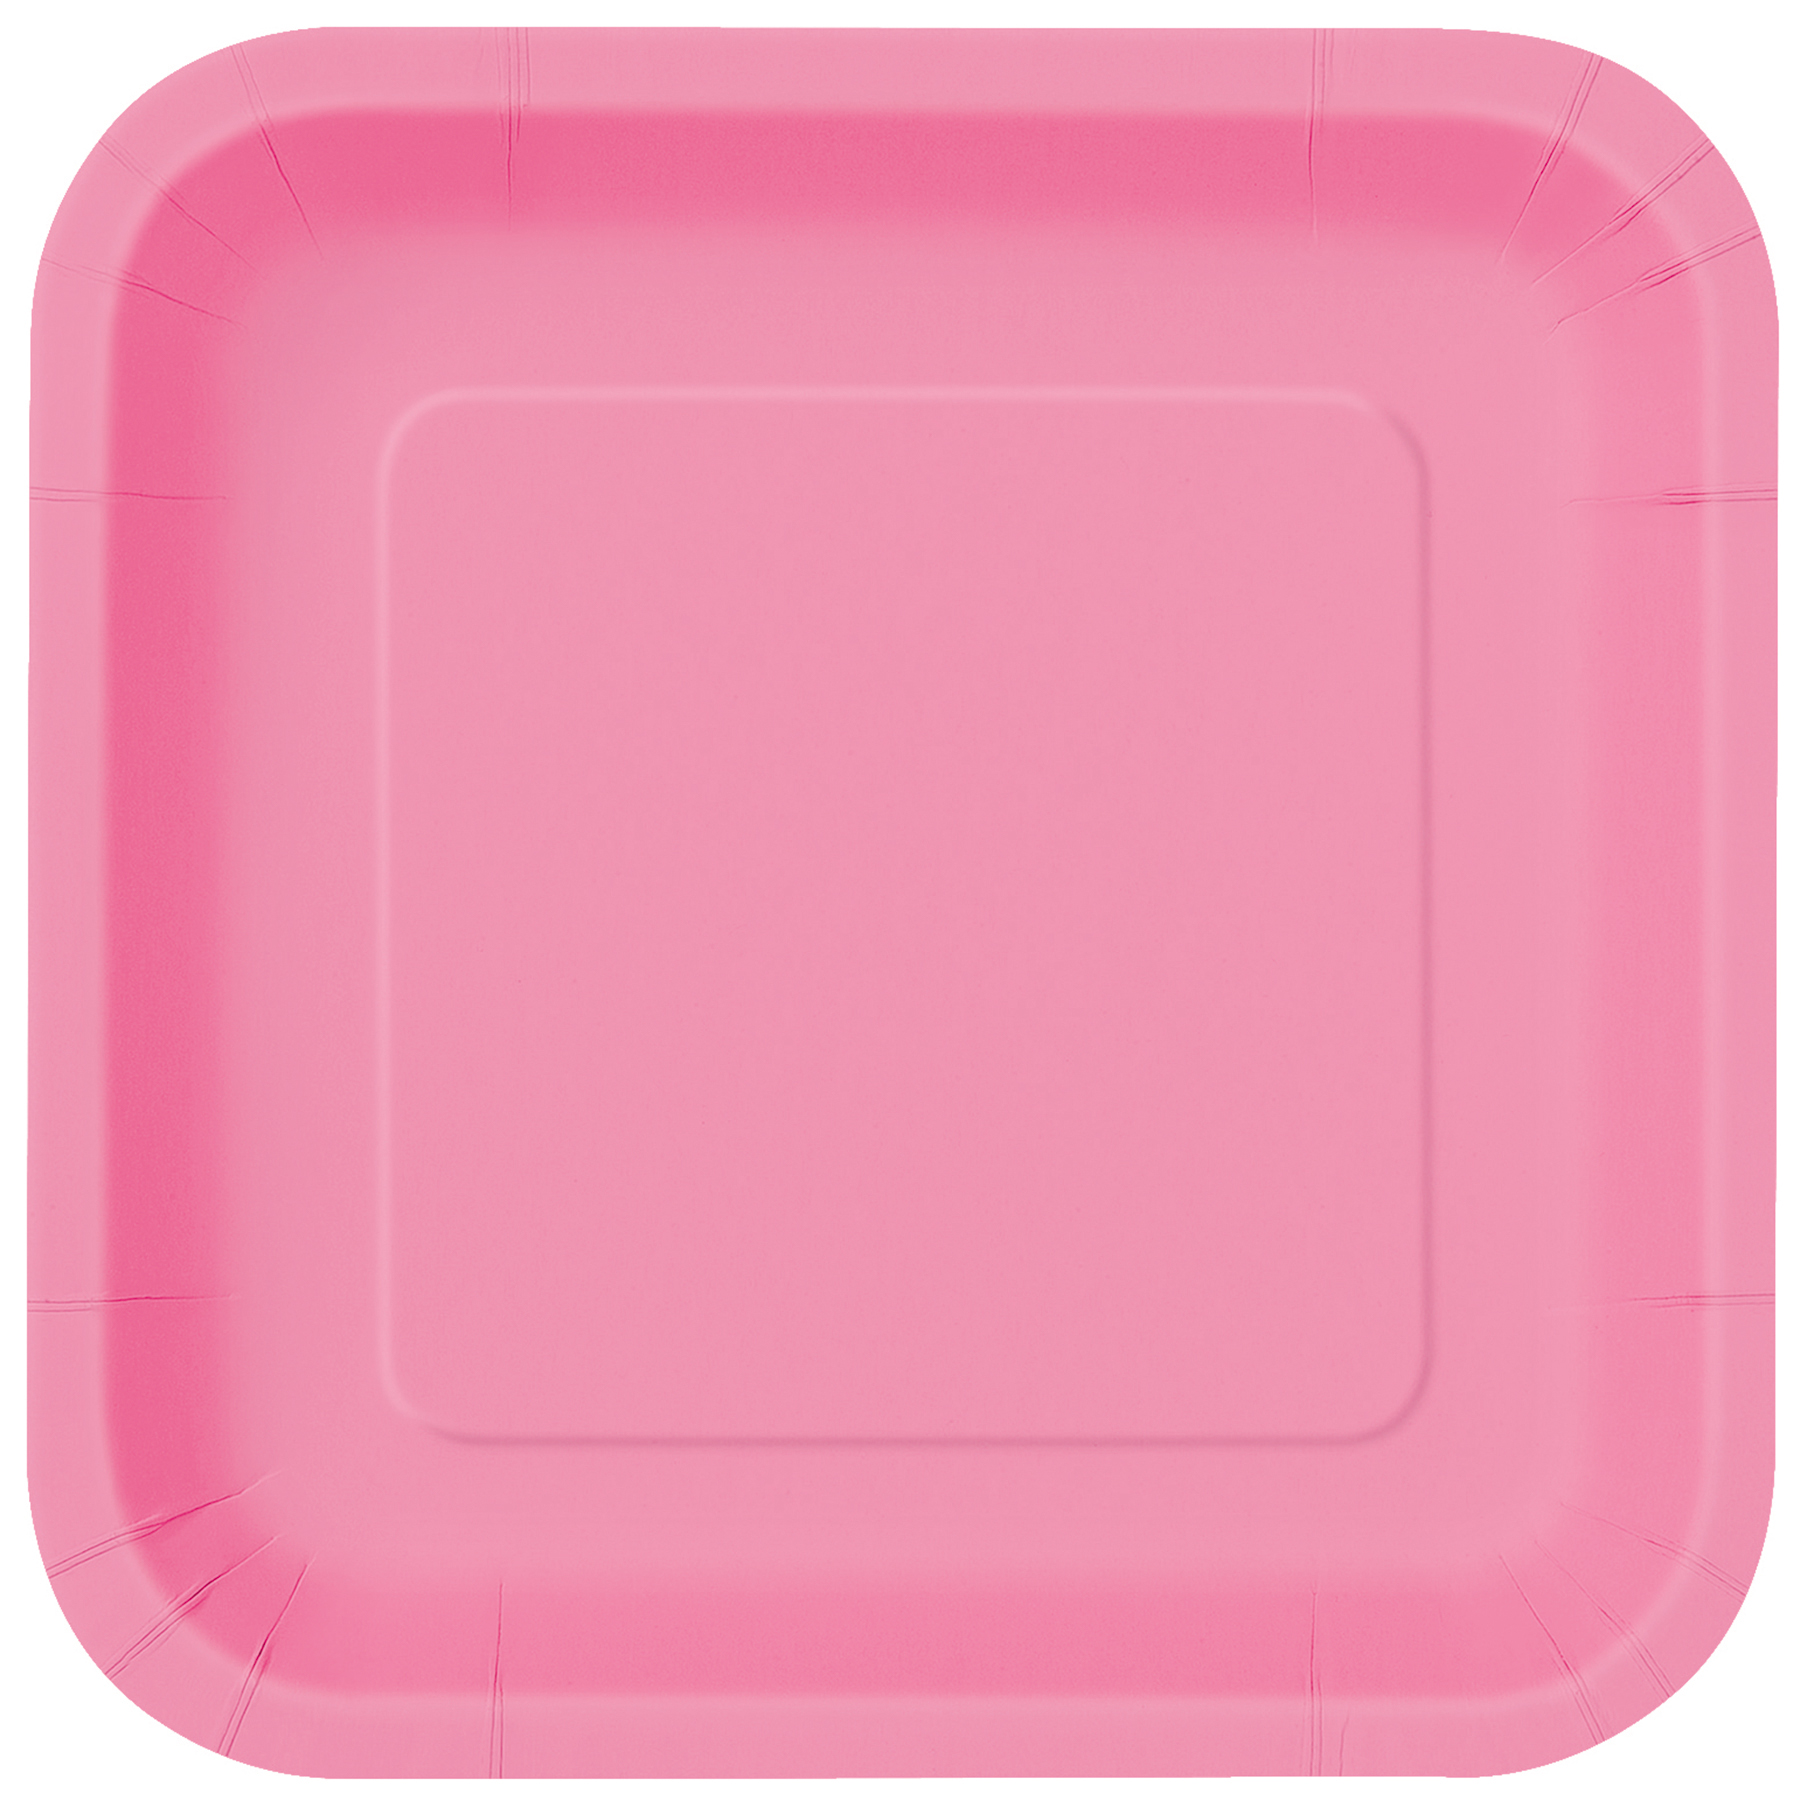 9u201d Square Hot Pink Dinner Plates 14ct  sc 1 st  Michaels Stores & 9